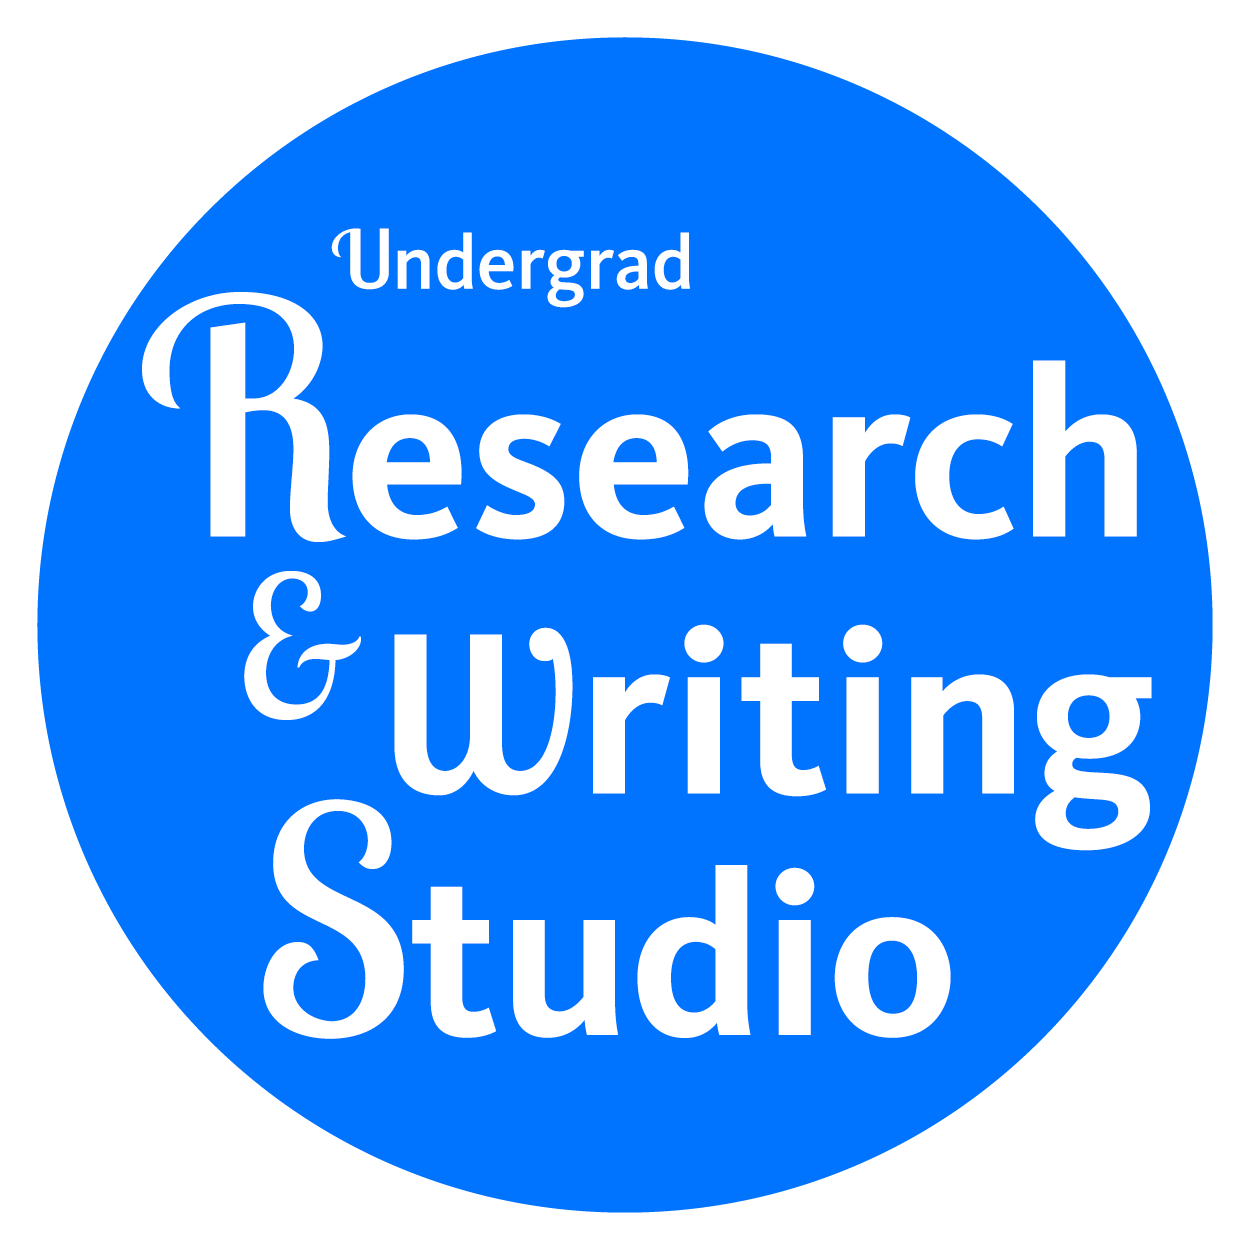 Undergrad Research and Writing Studio